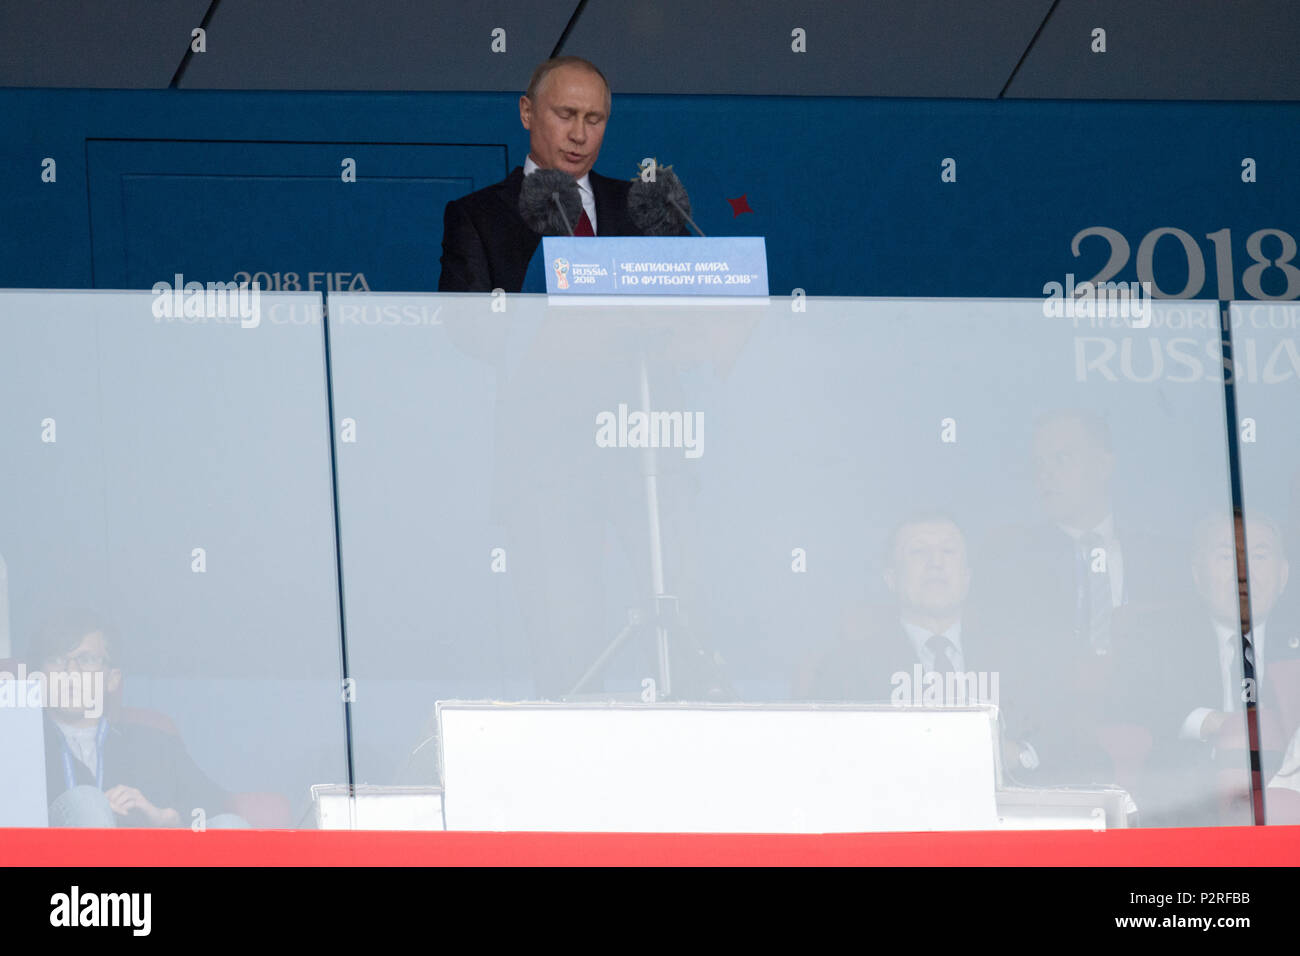 Moscow, Russland. 14th June, 2018. Vladimir Vladimirovich PUTIN, President of the Russian Federation, gives the opening speech, talks, talking, half figure, half figure, opening speech, opening, celebration, Russia (RUS) - Saudi Arabia (KSA) 5: 0, preliminary round, group A, match 1, on 14.06.2018 in Moscow; Football World Cup 2018 in Russia from 14.06. - 15.07.2018. | usage worldwide Credit: dpa/Alamy Live News - Stock Image